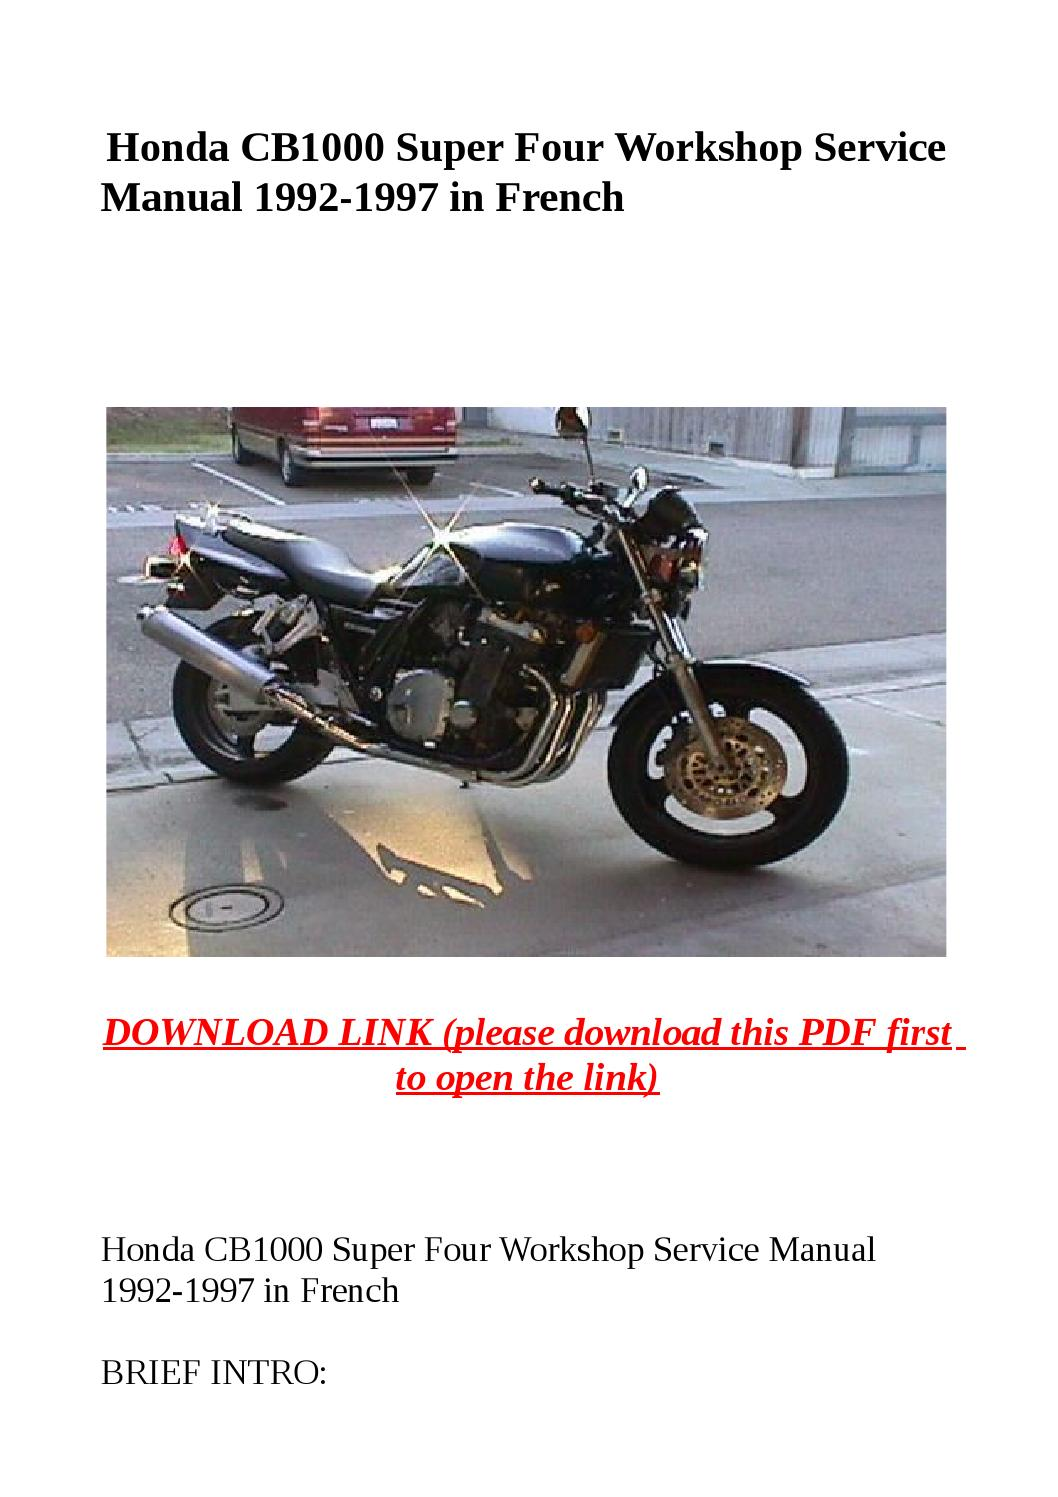 Honda cb1000 super four workshop service manual 1992 1997 in french by yghj  - issuu